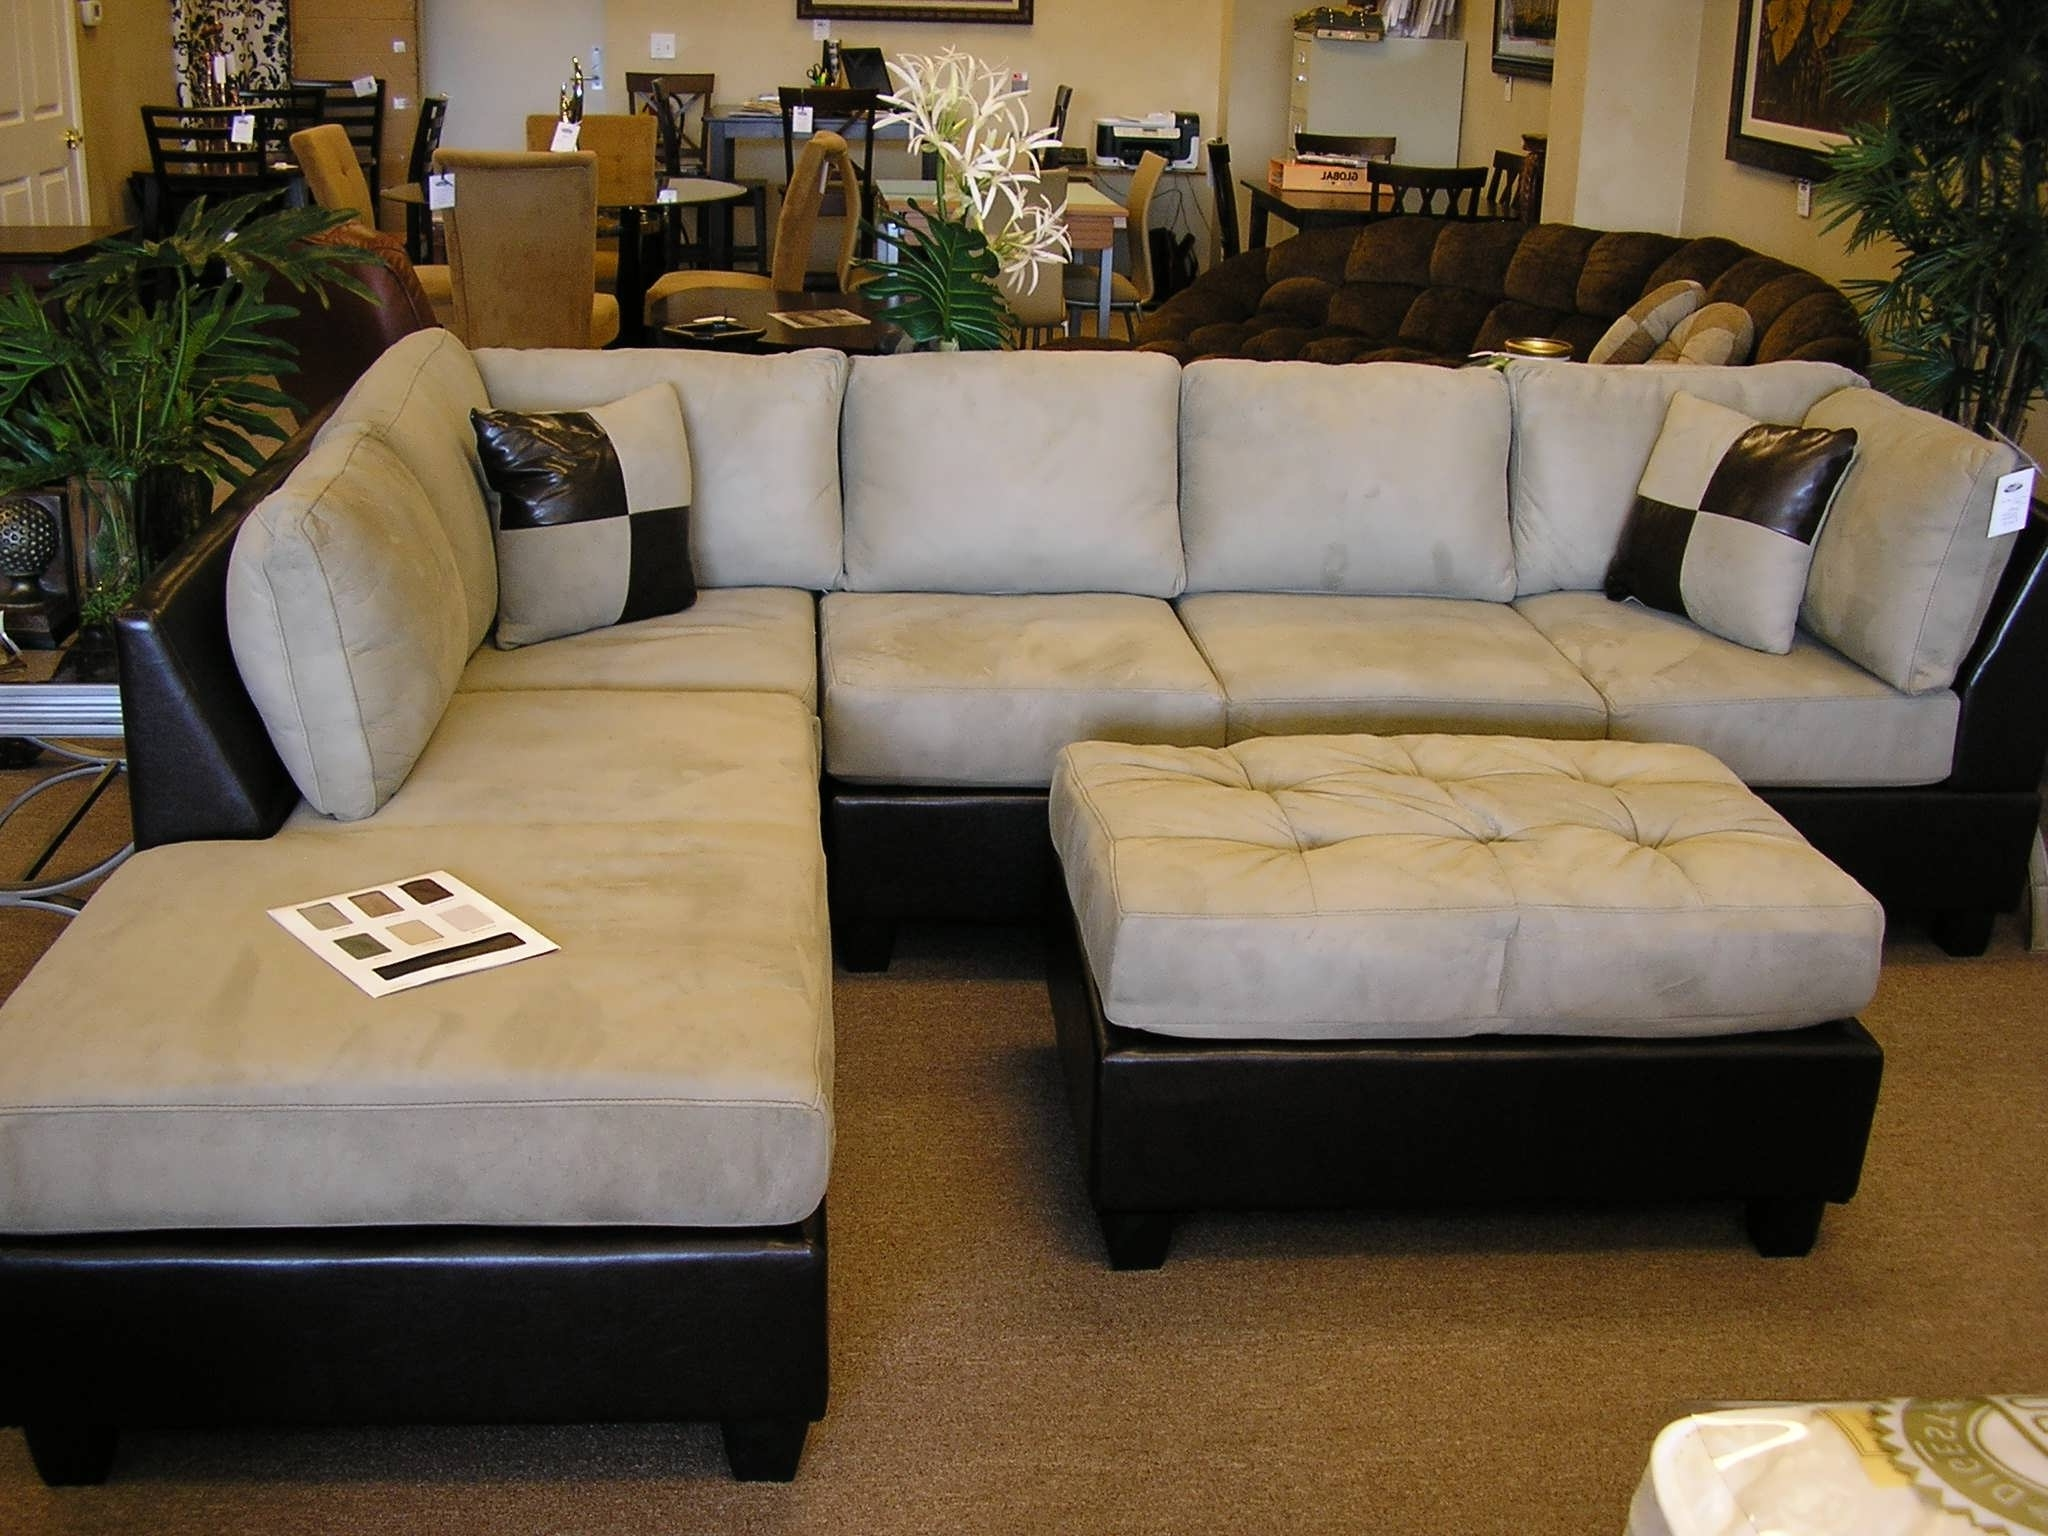 Sofa : Sectional Sofa Set L Shaped Fabric Sofa Chaise Sofa Leather For Famous Sofa And Chaise Sets (View 9 of 15)